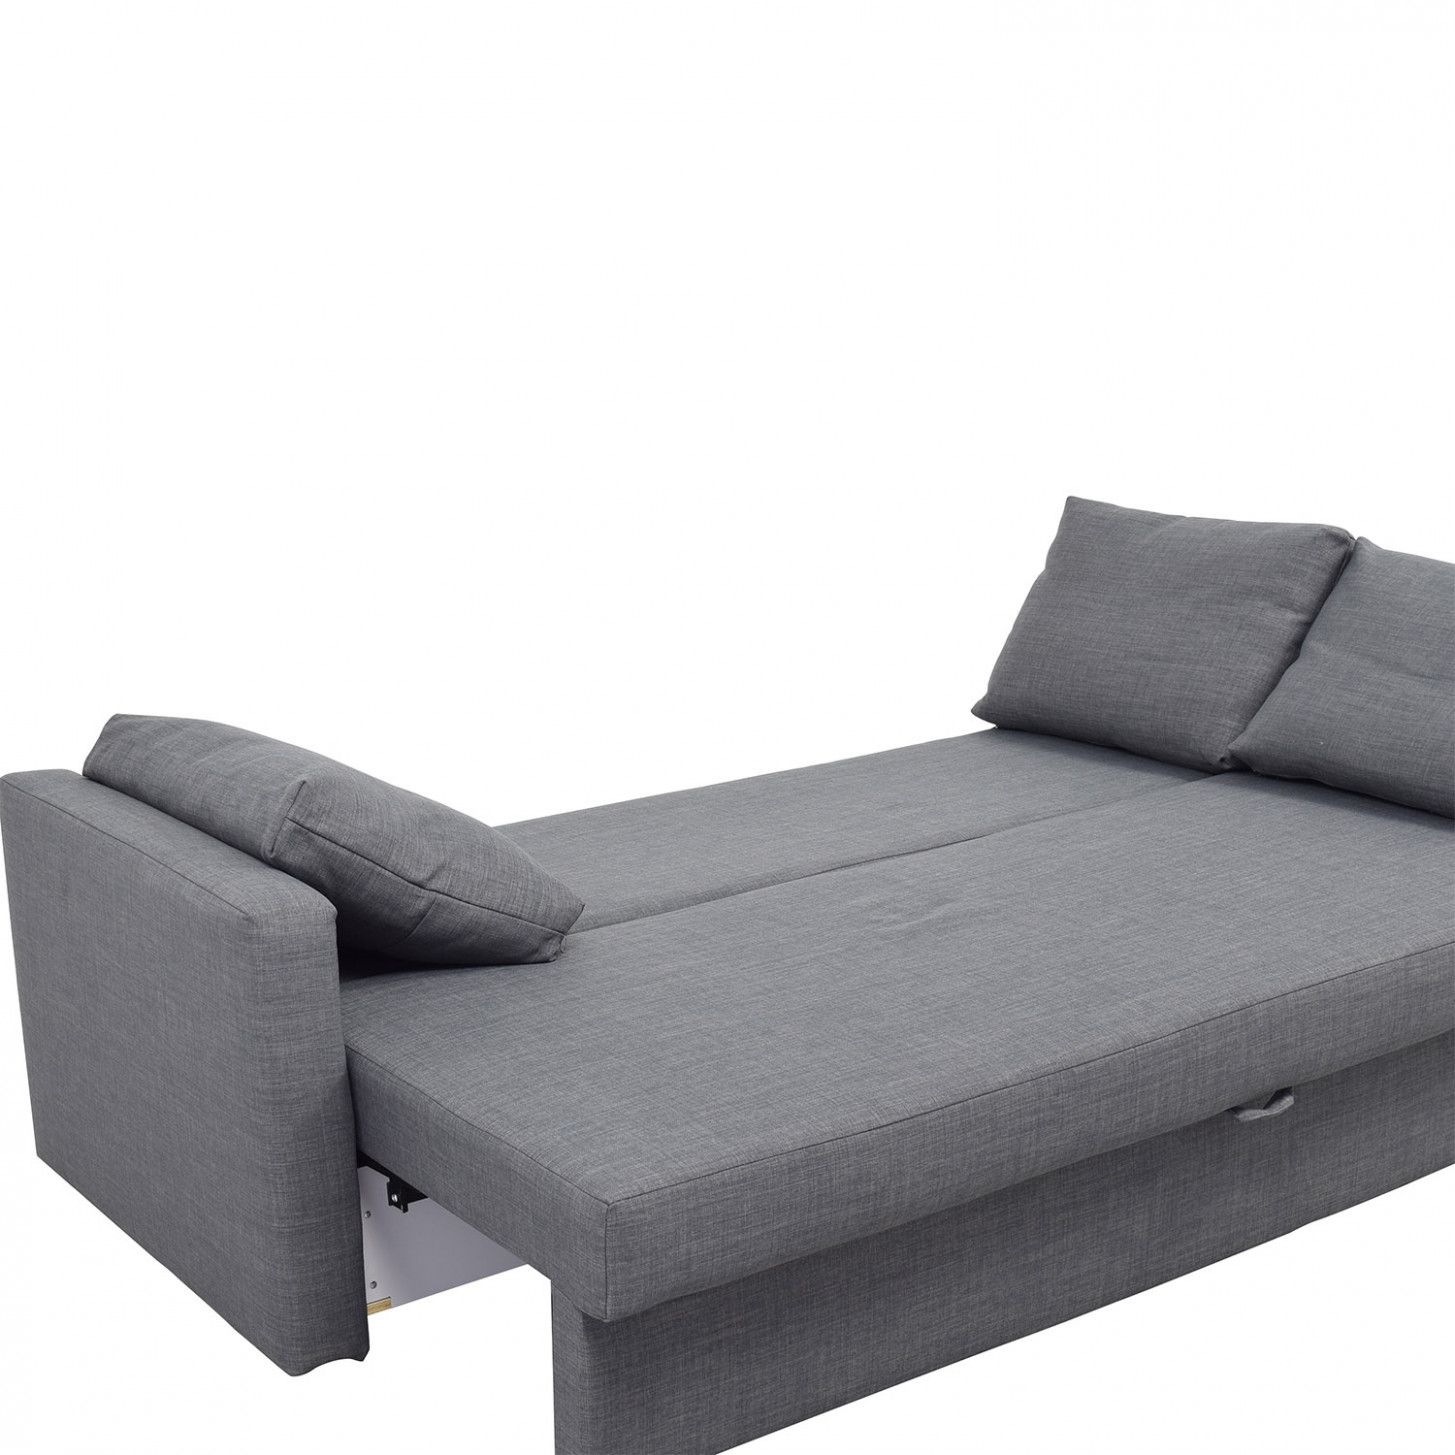 Grey Chair Sofa Bed Chair Sofa Bed Sofa Chair Sleeper Sofa